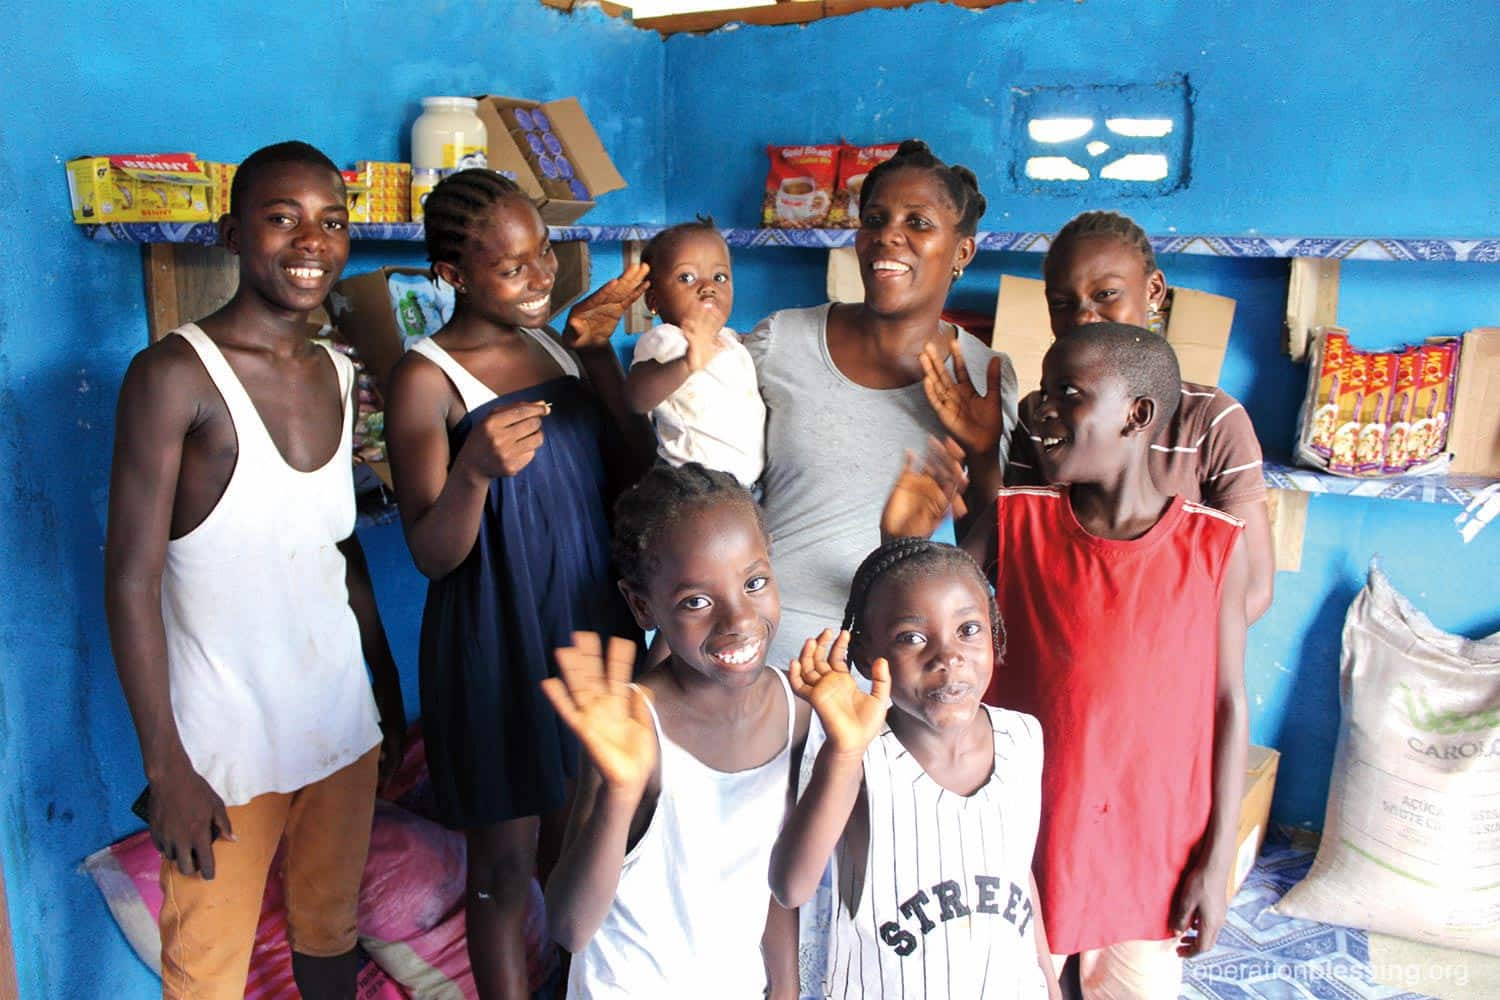 FEBRUARY: OBI is helping keep orphans in Liberia in loving homes with their extended family by providing education support and small businesses to help these families earn enough income to support additional children.